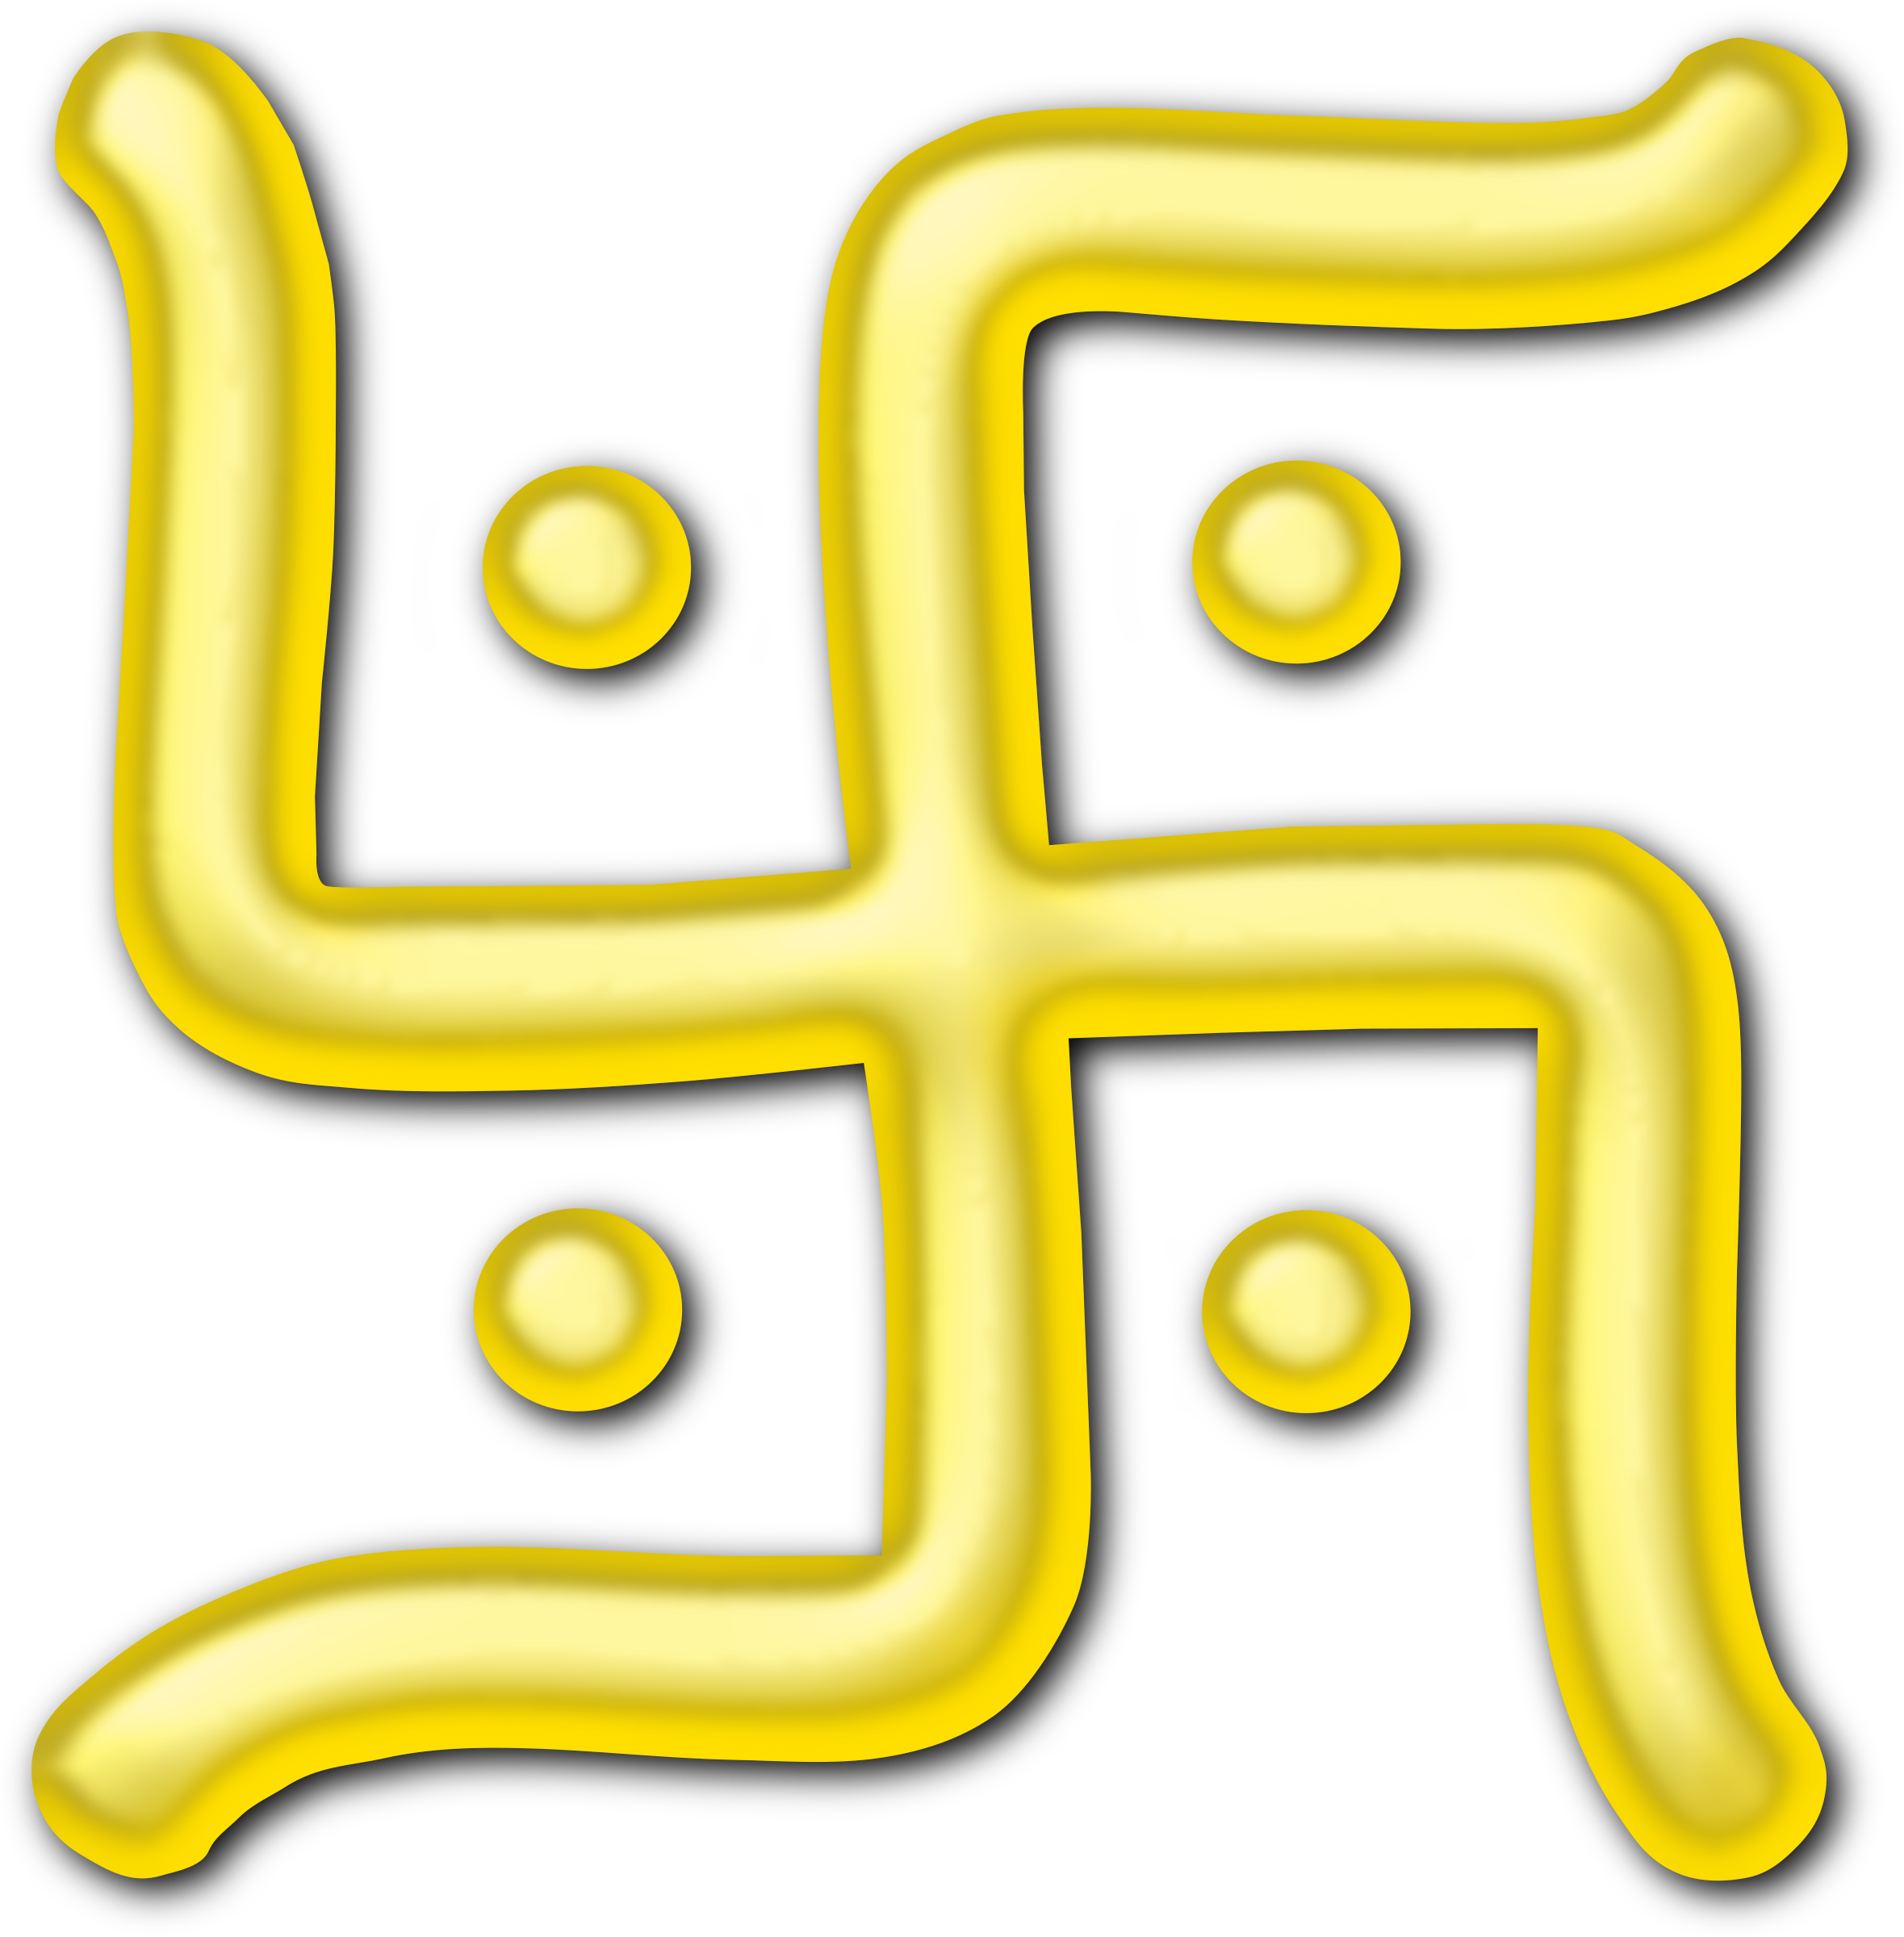 Golden swastika by Firkin